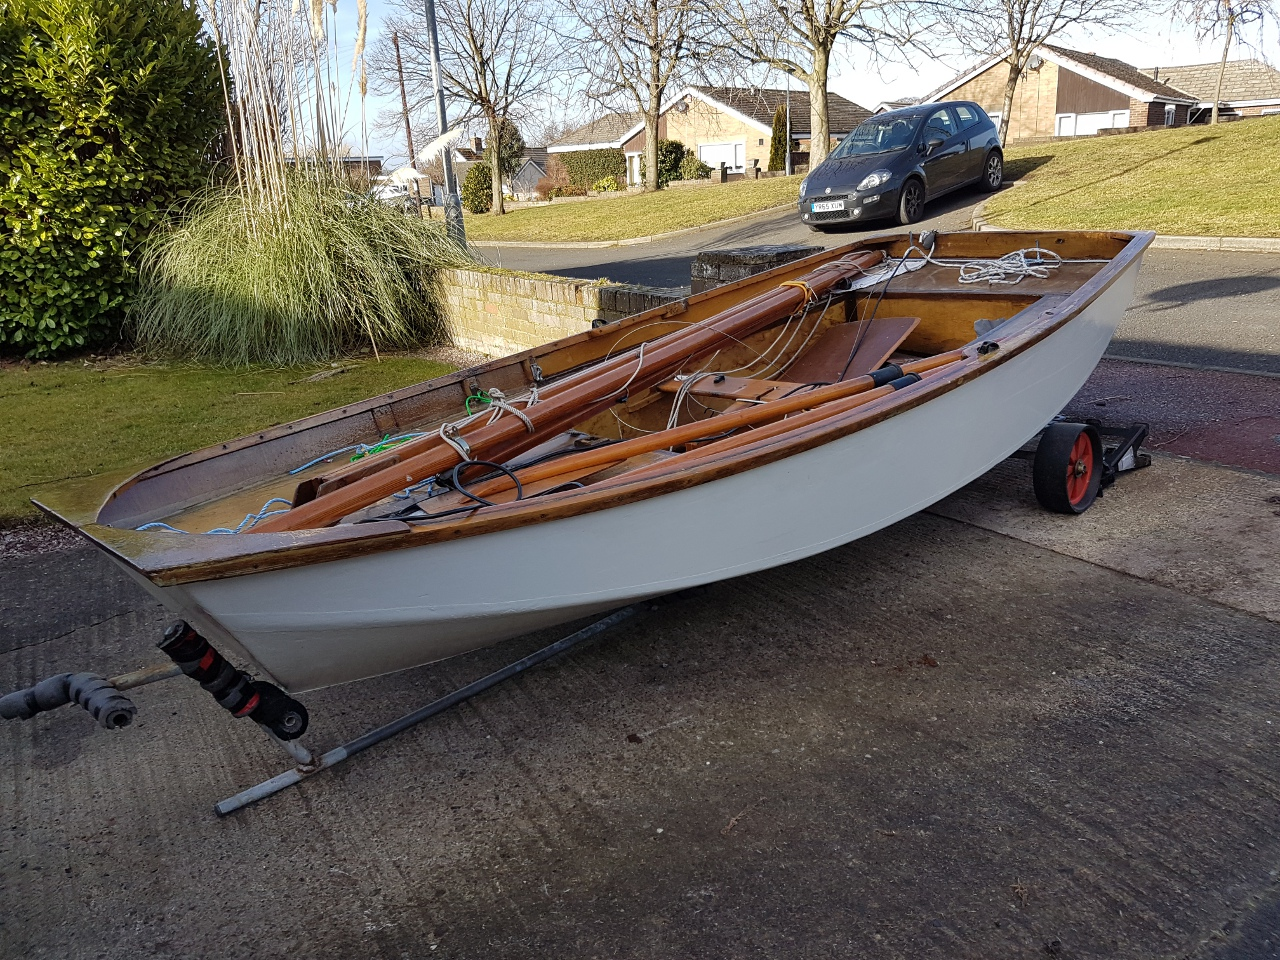 A whilte wooden Mirror dinghy unrigged on a driveway